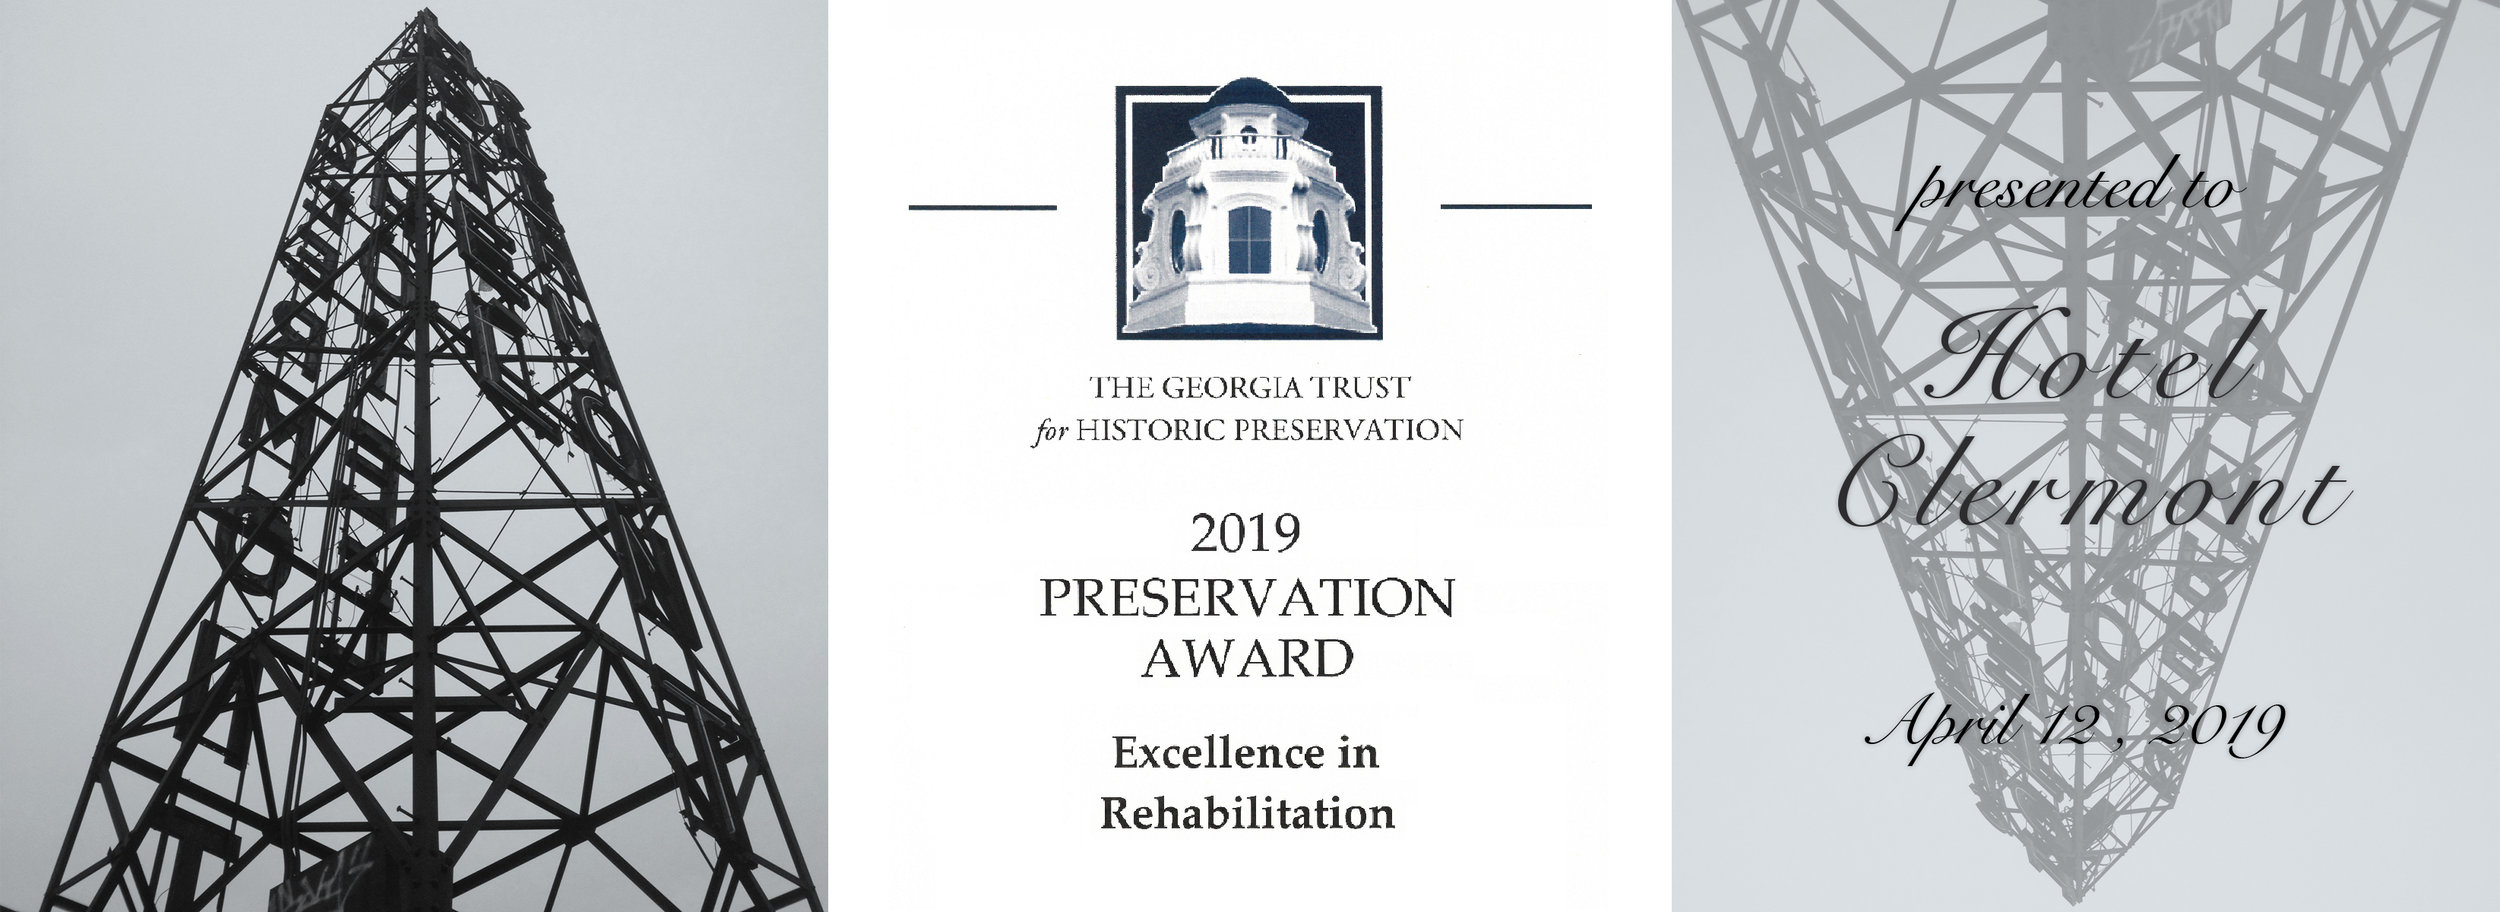 2018-10-18_Ga Trust for Preservation Award.jpg